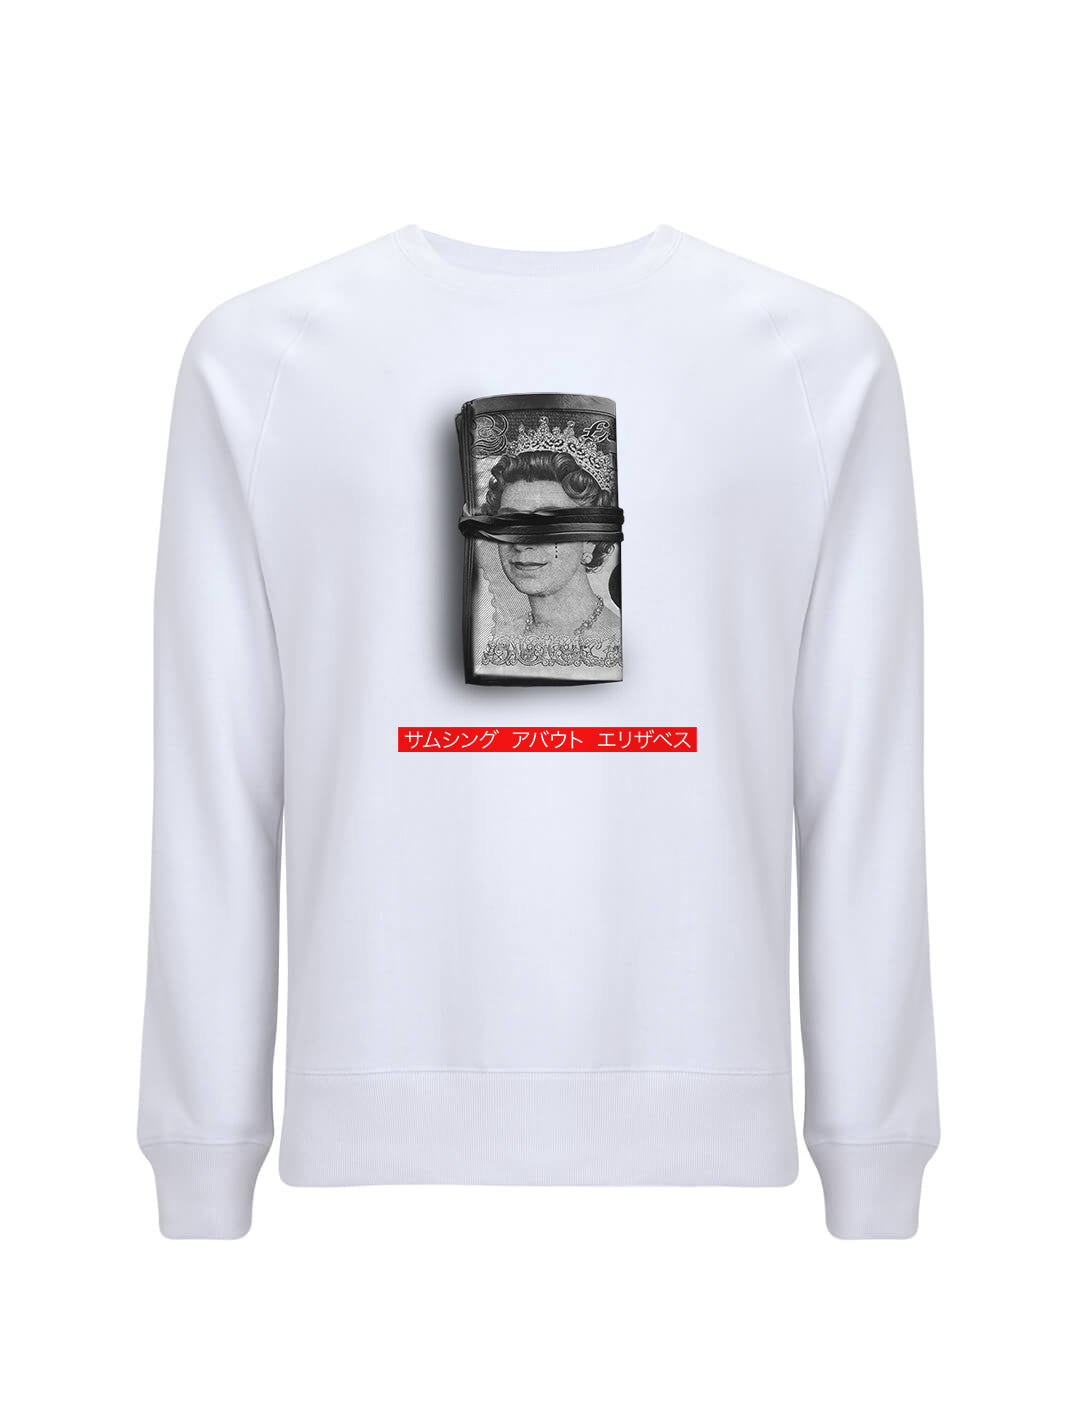 Money Roll -White Sweatshirt